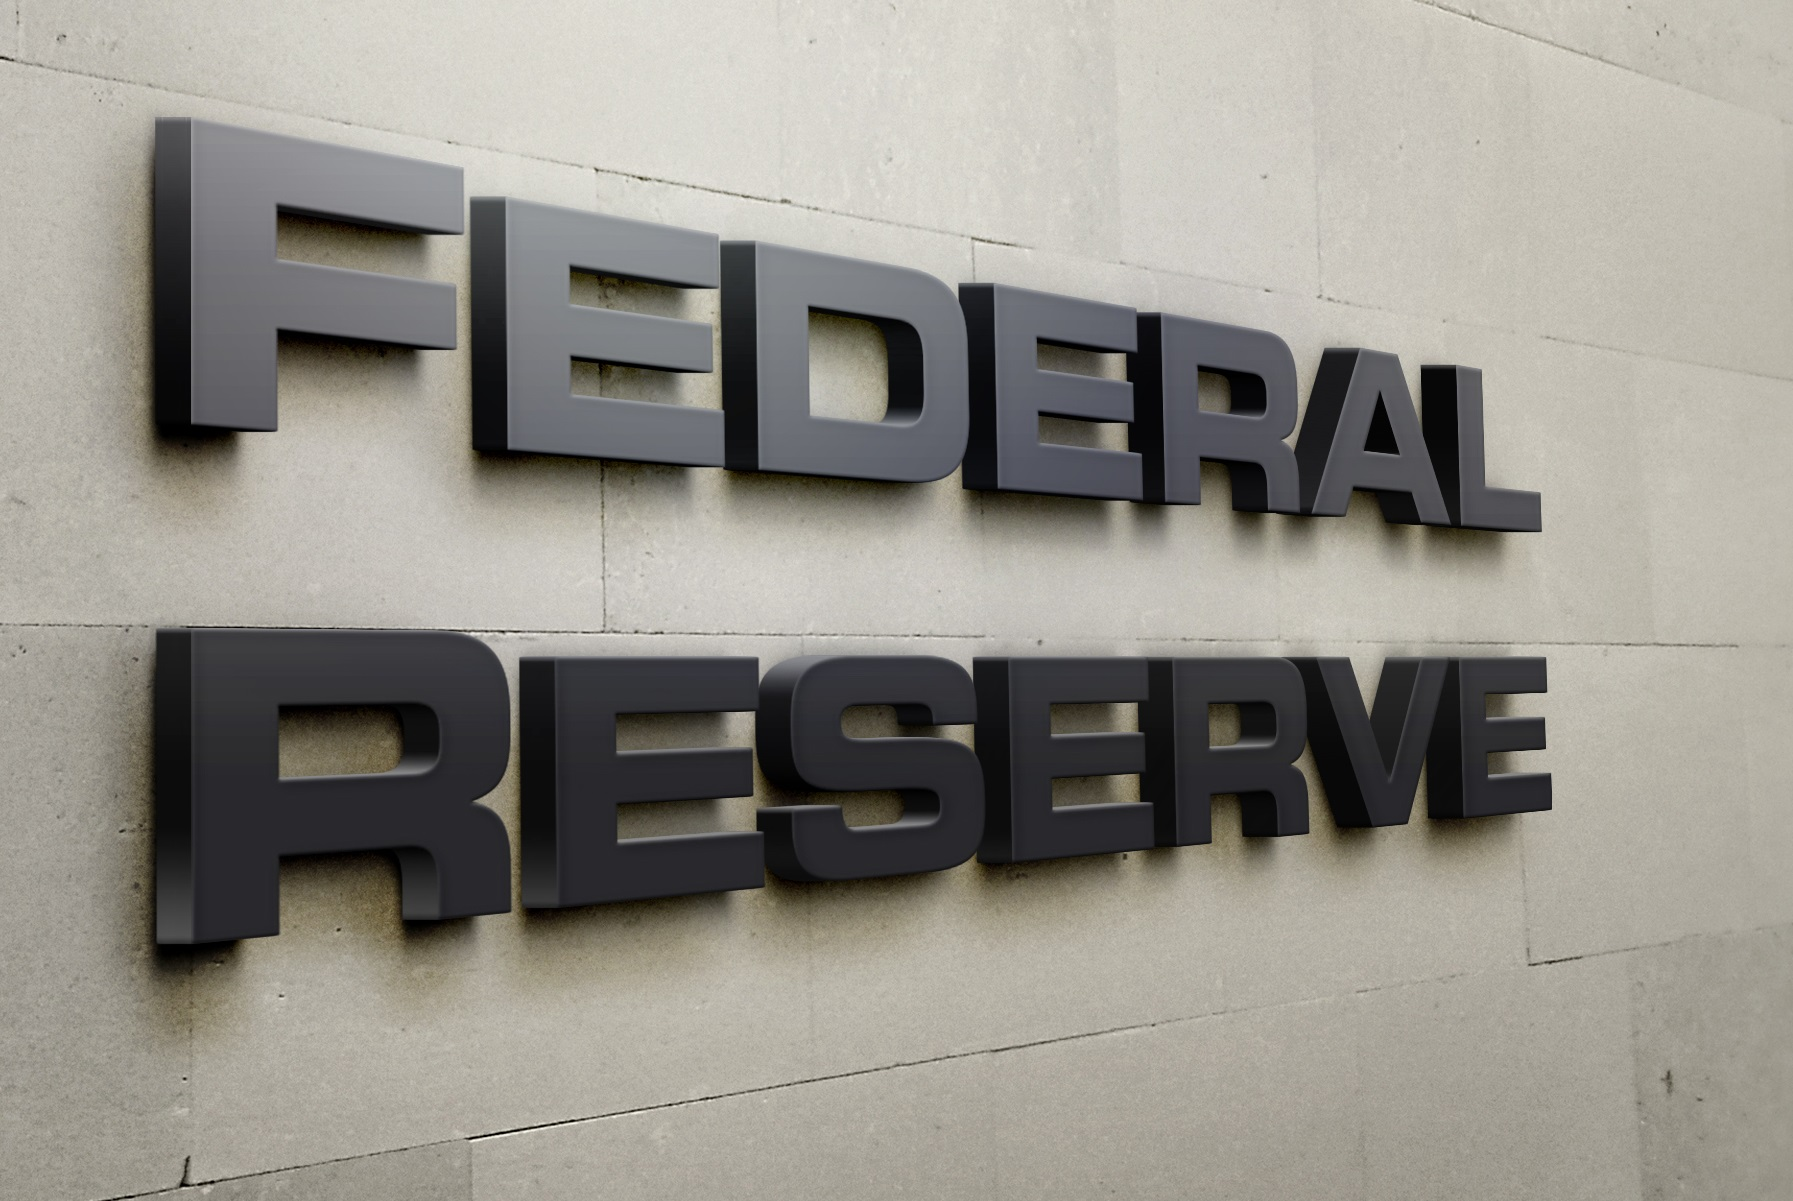 Trader Focus: Two-Day Federal Reserve Meeting & Stock Movement